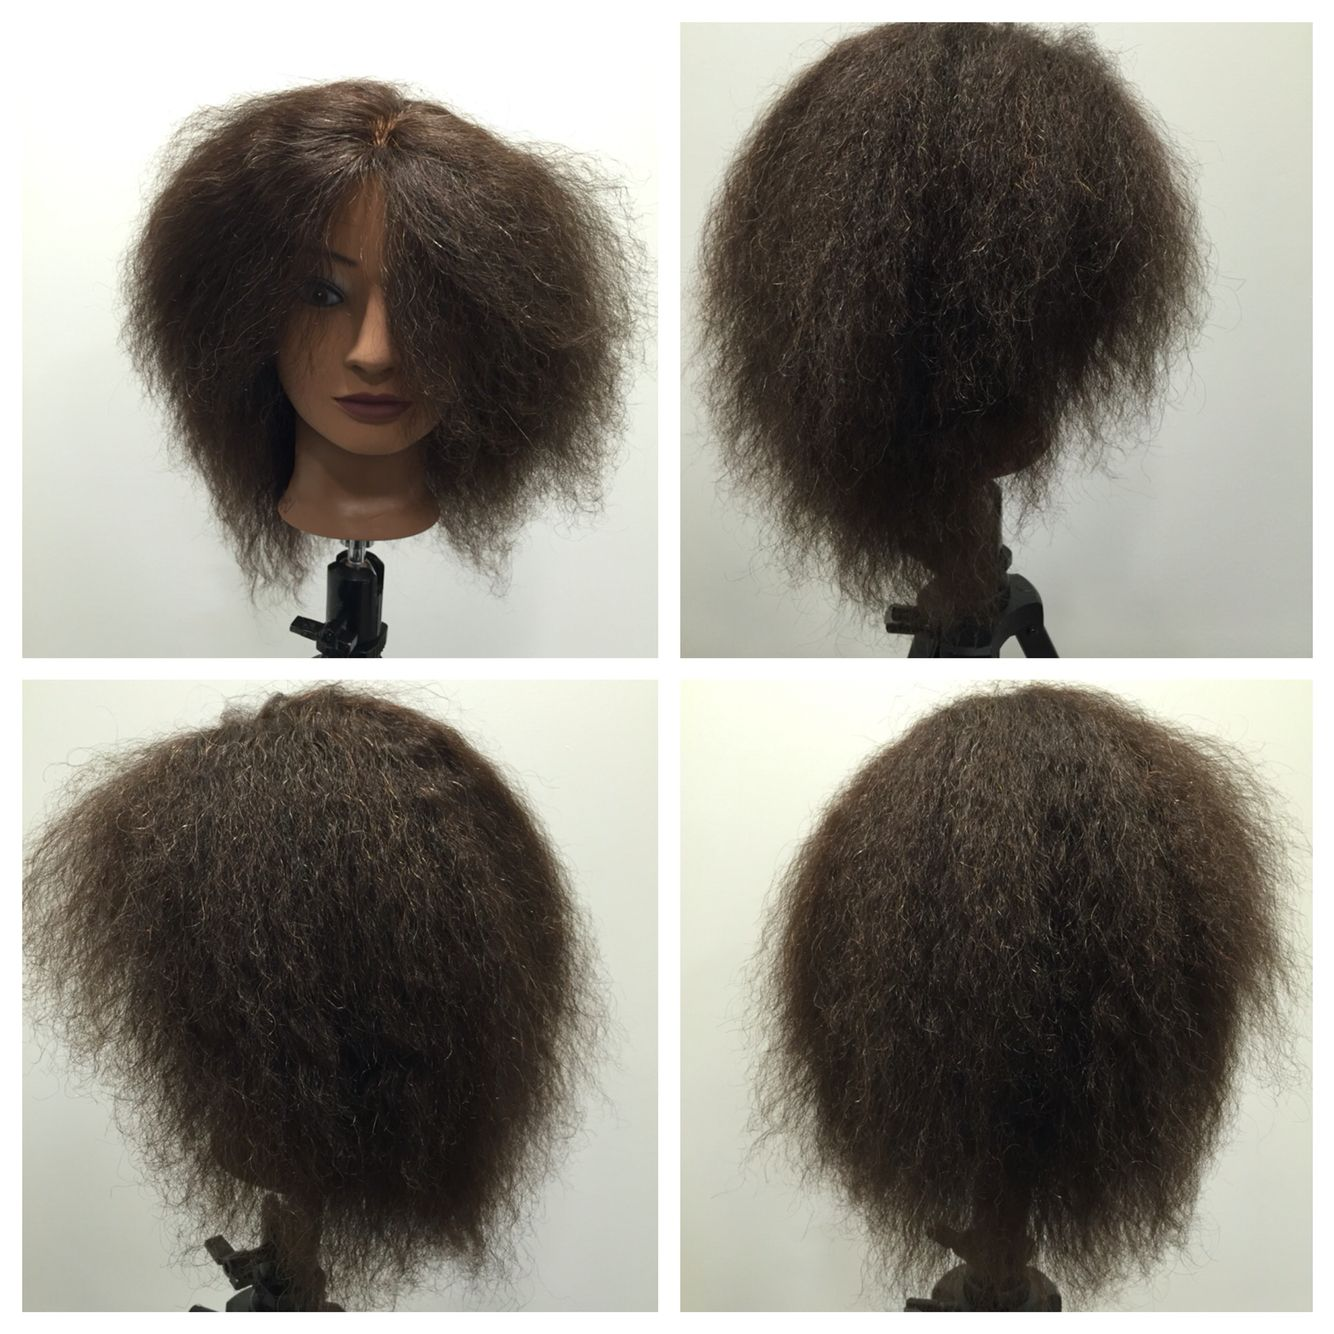 Relaxer - Before